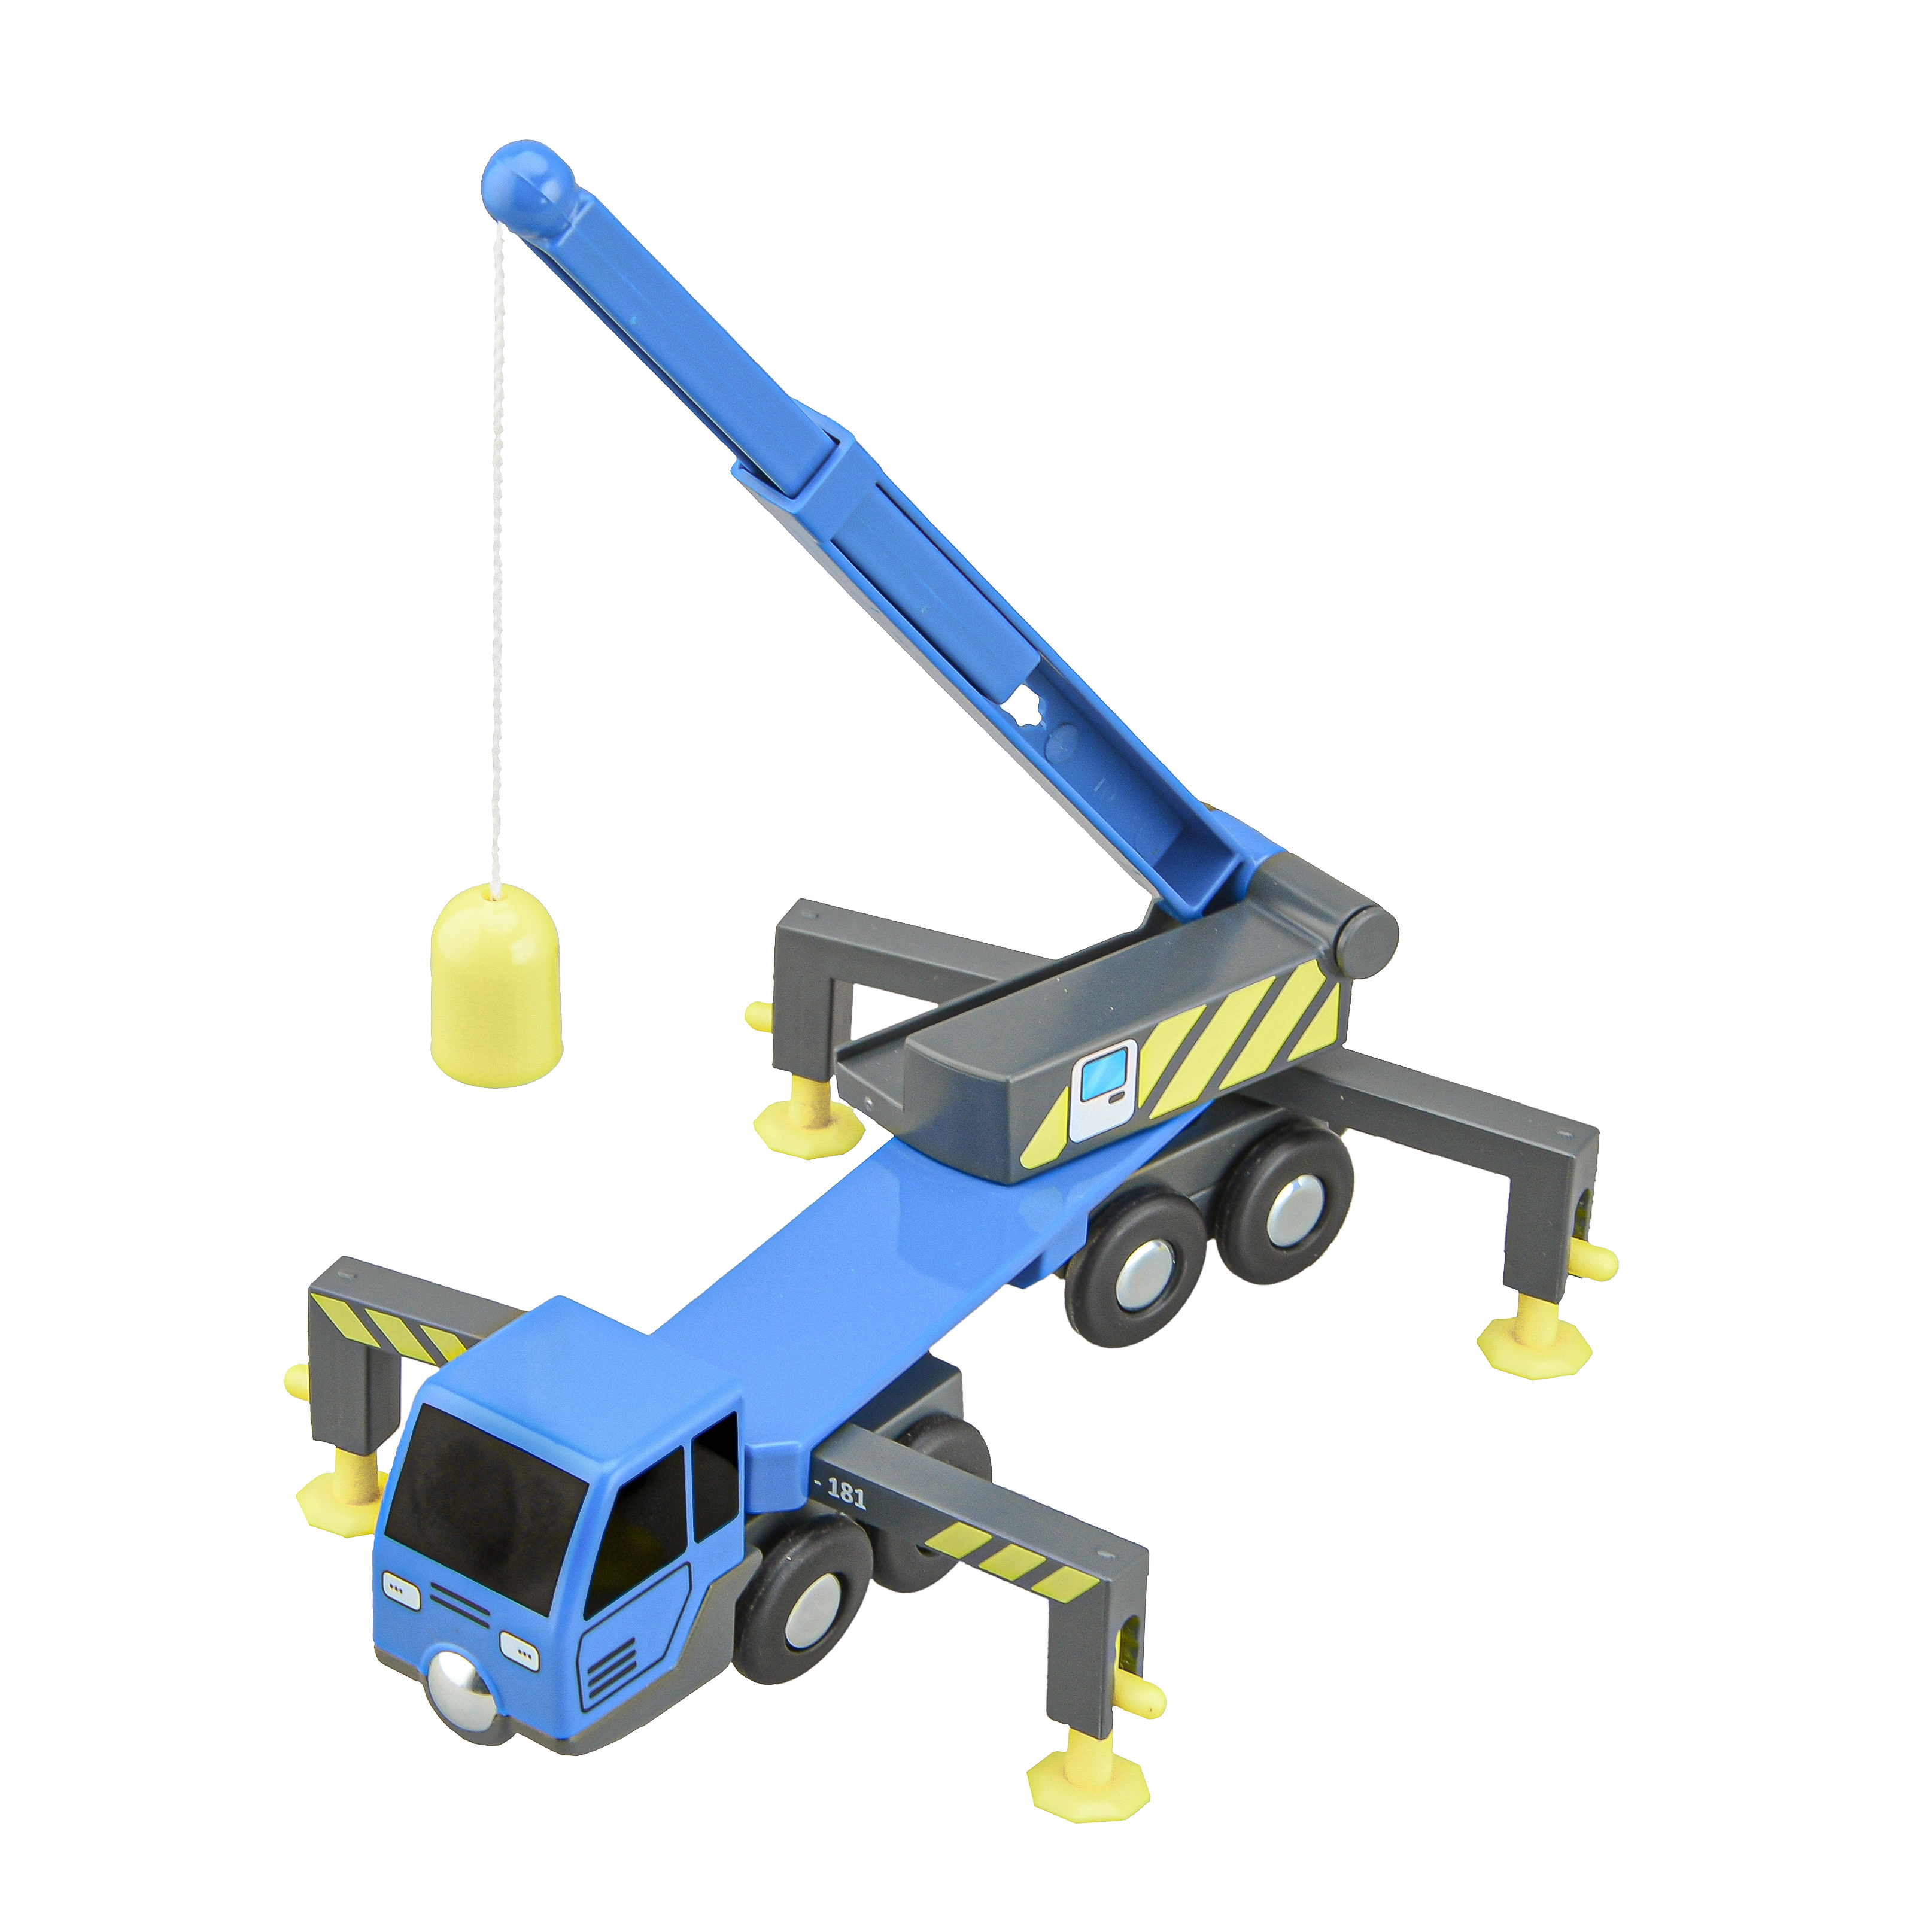 Multifunctional Train Toy Set Accessories Crane Truck Toy Vheicles Compatible With Wooden Tracks Railway